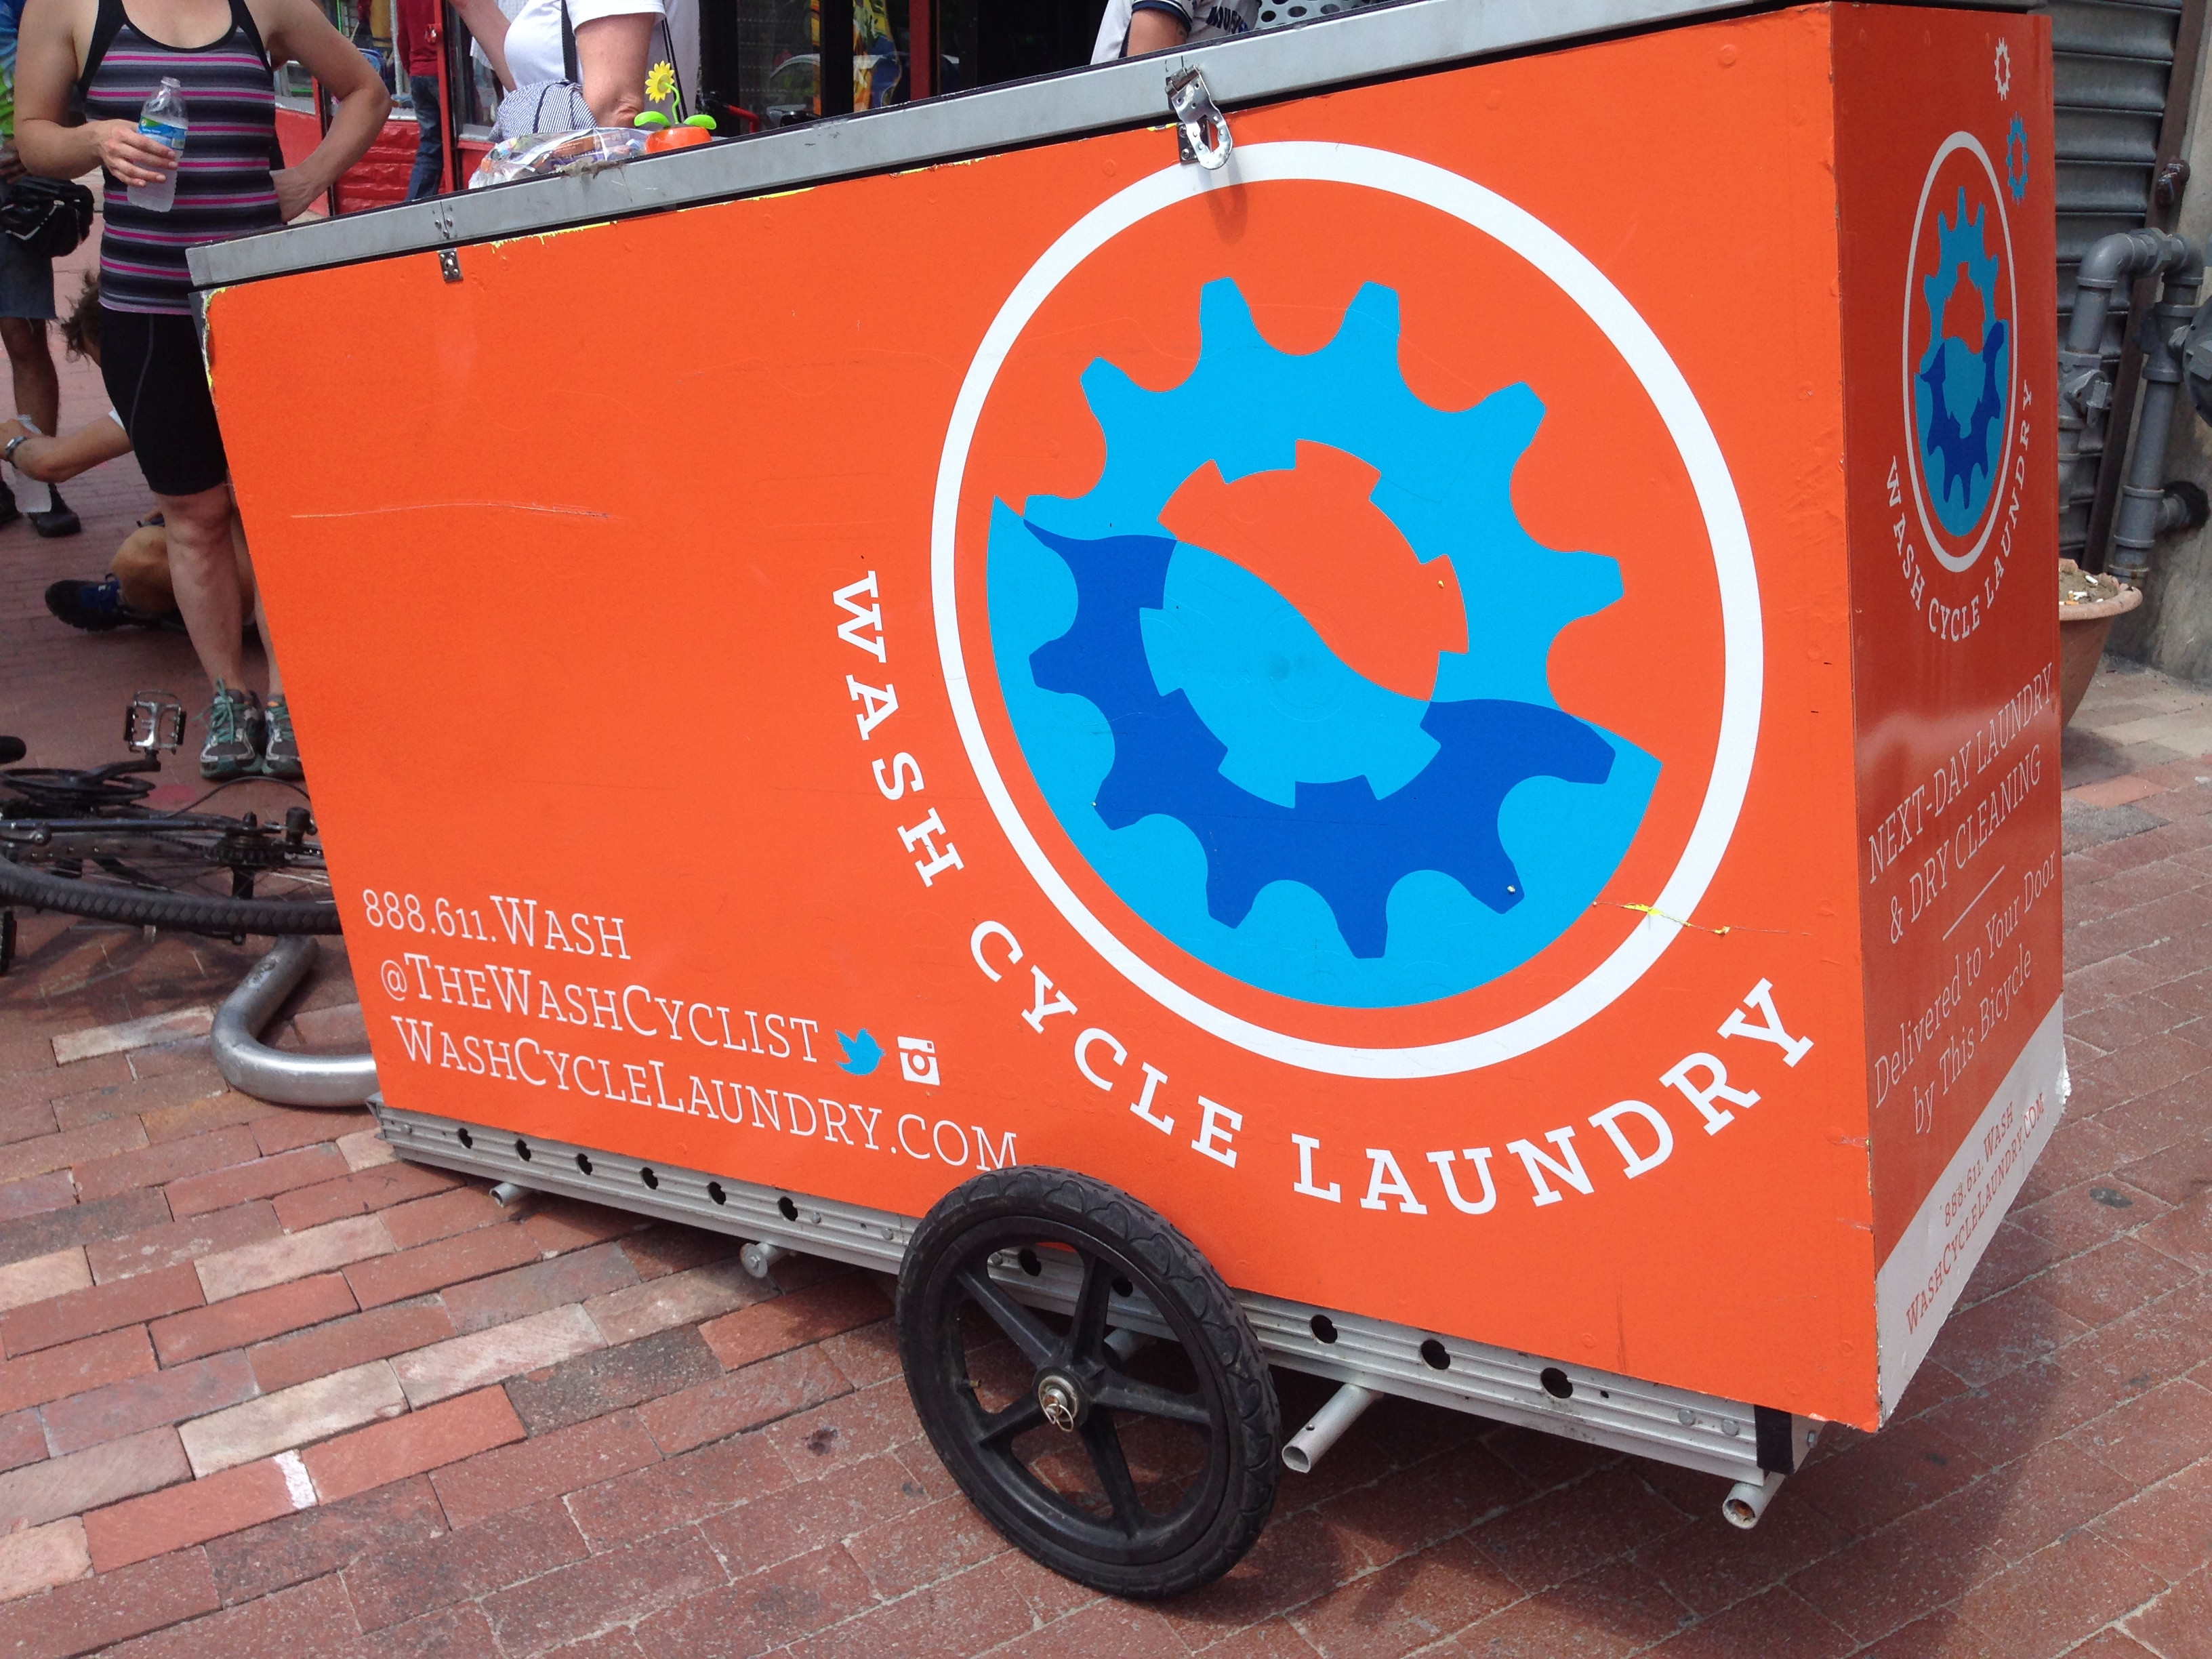 D.C. business washes laundry, delivers it on bikes